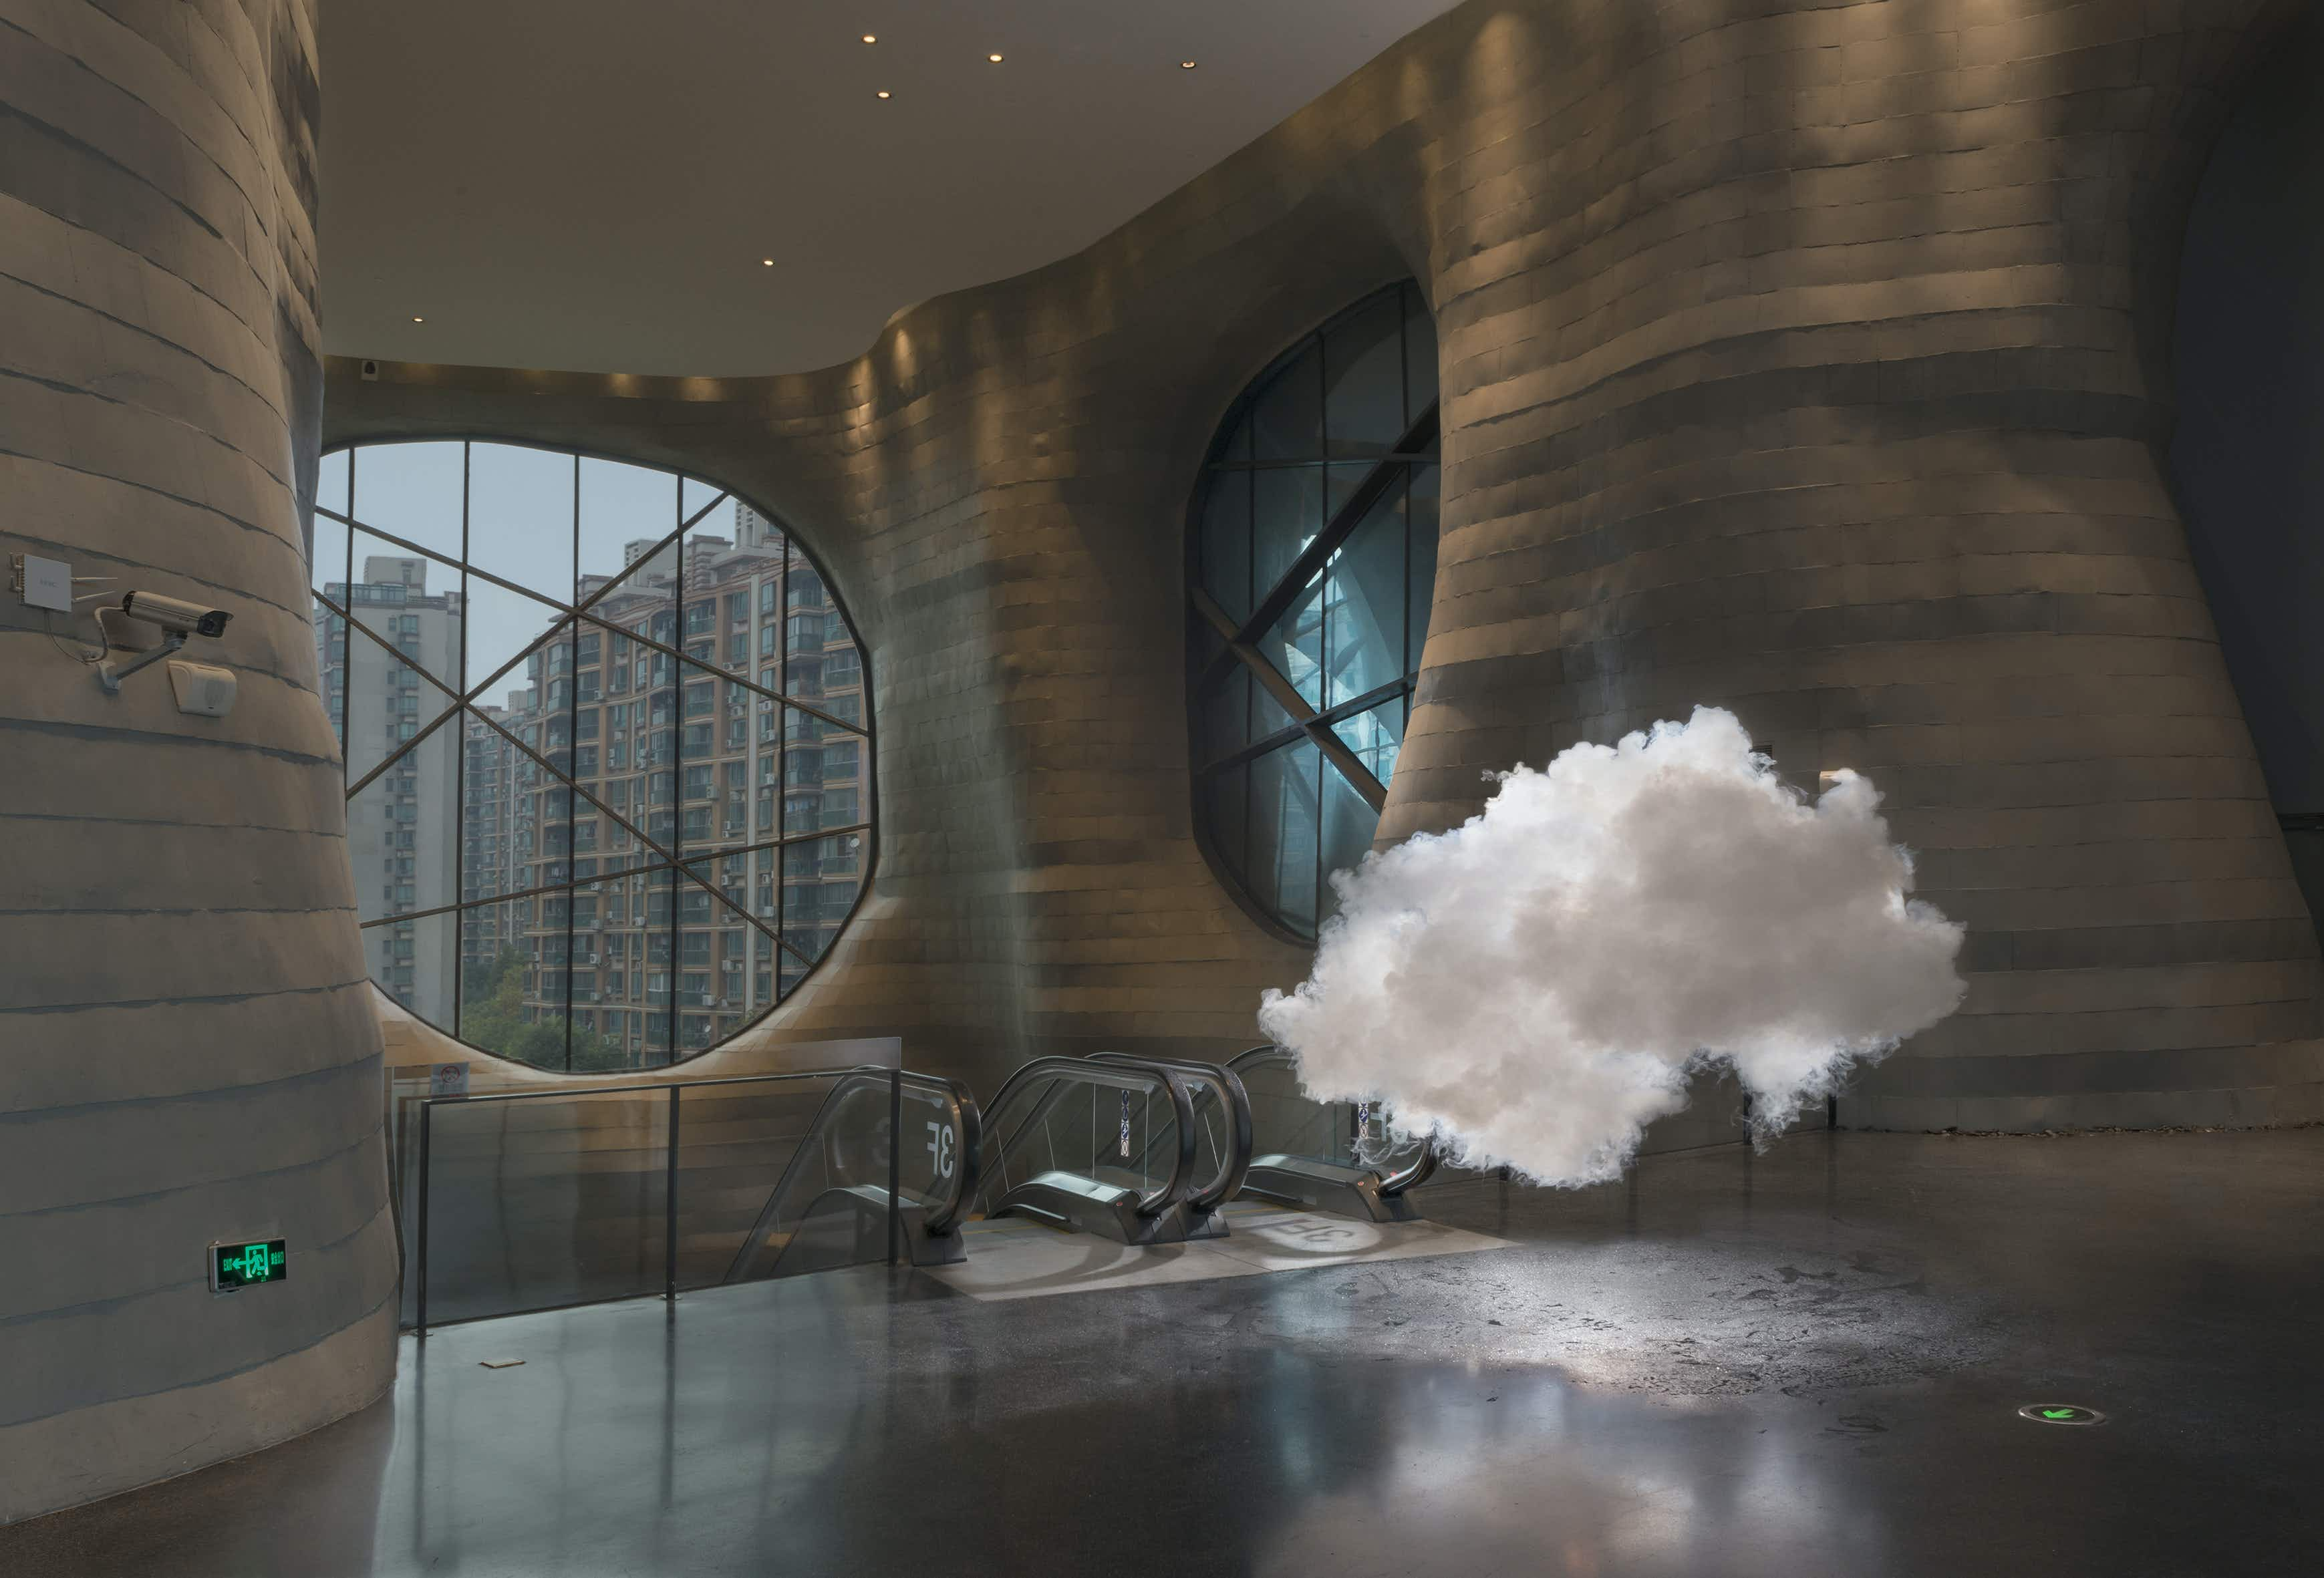 An artist creates miniature clouds in spaces around the world